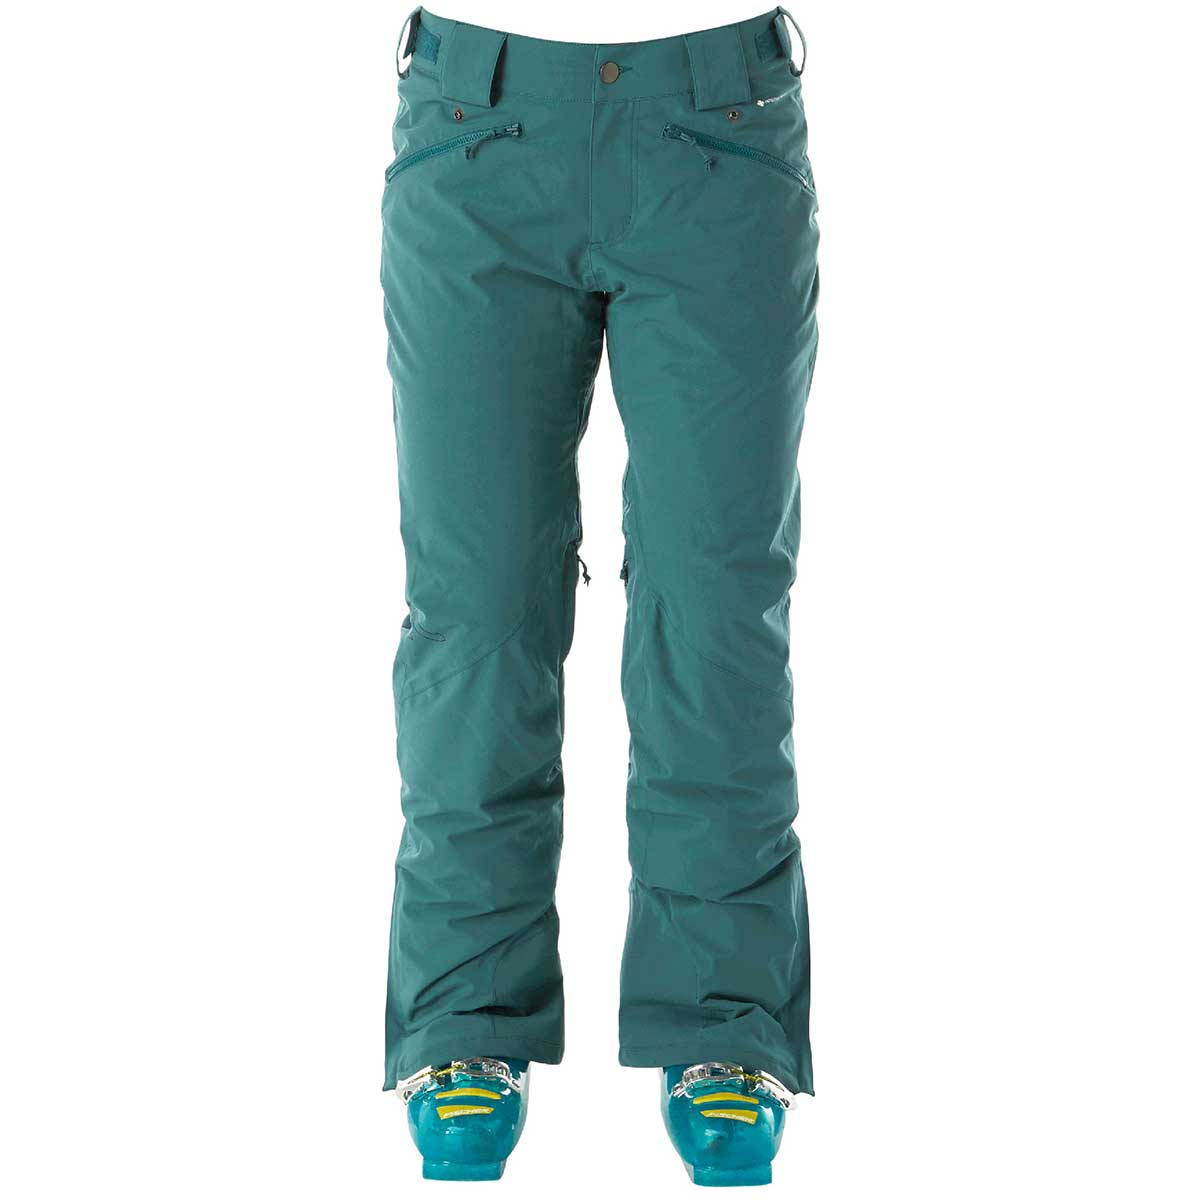 Flylow women's Flylow Daisy Insulated Pant in Spruce front view